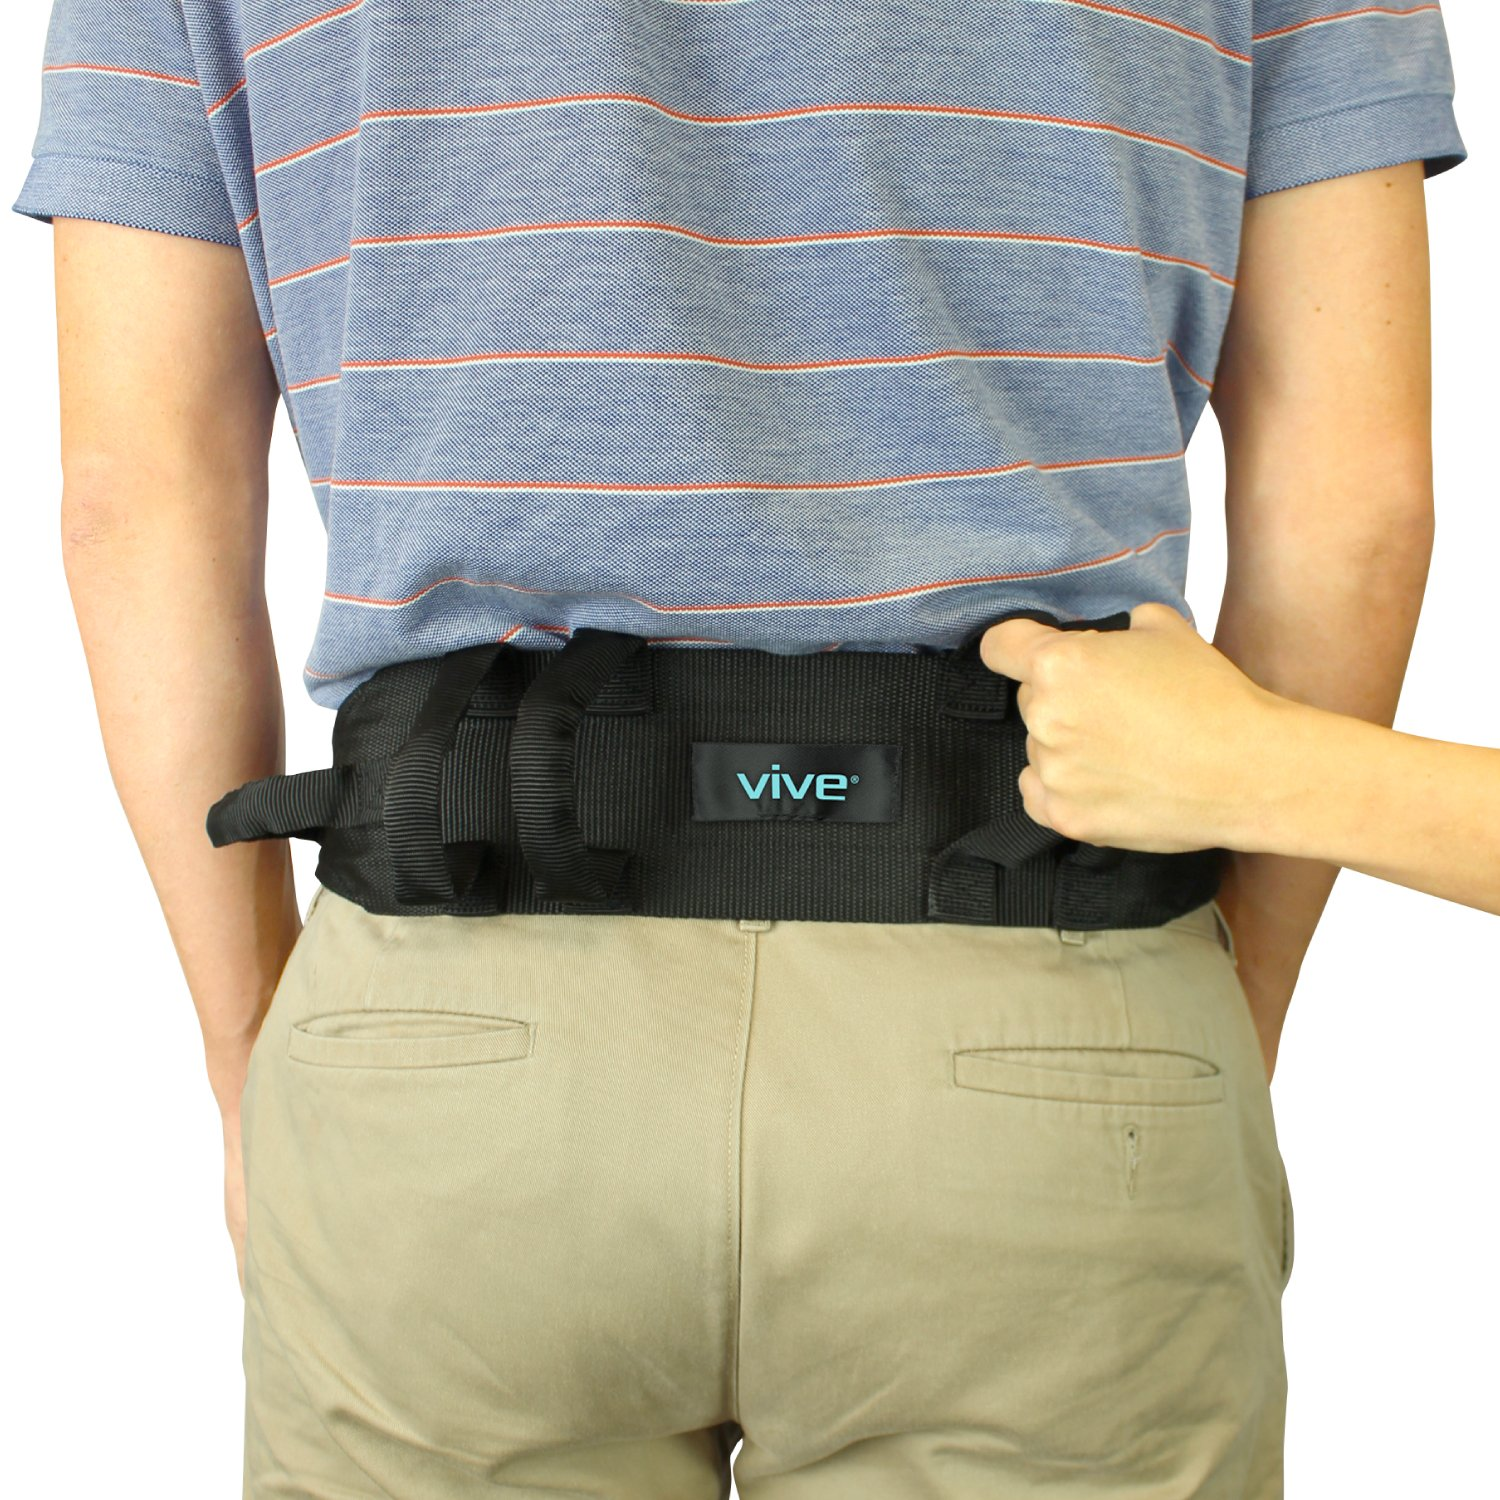 Vive Transfer Belt with Handles - Medical Nursing Safety Gait Patient Assist - Bariatric, Pediatric, Elderly, Handicap, Occupational & Physical Therapy - PT Gate Strap Quick Release Metal Buckle by Vive